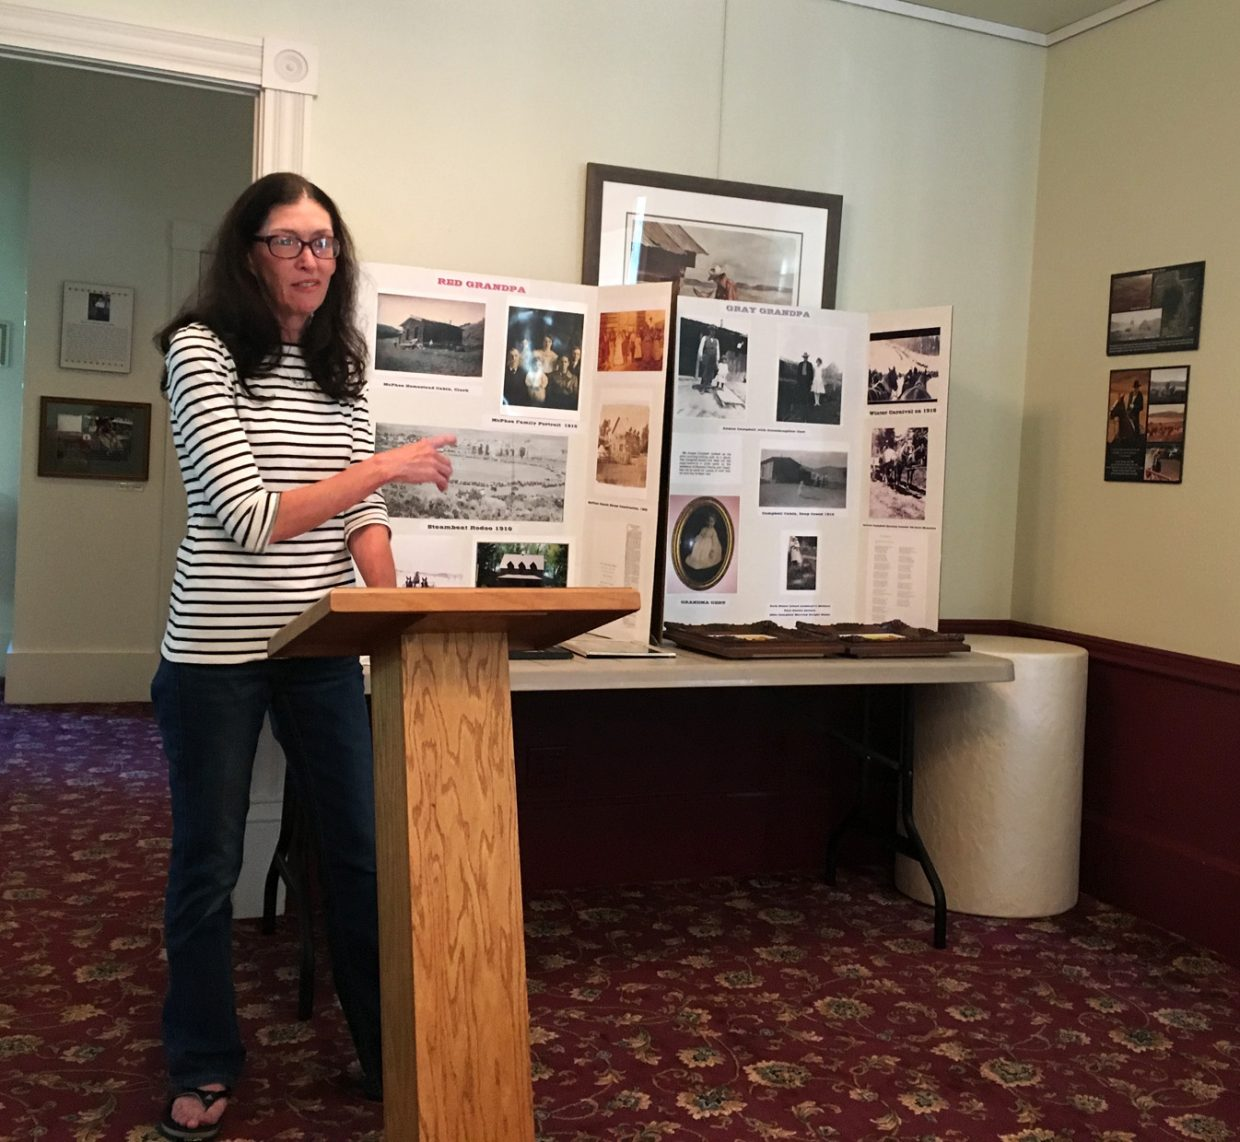 Shaunna Watterson served her audience at the Tread of Pioneers Museum lemon ice similar to the variety her grandmother used to make before speaking about her family's pioneer history in Routt County during the penultimate entry in the 2016 Brown Bag Lecture Series.